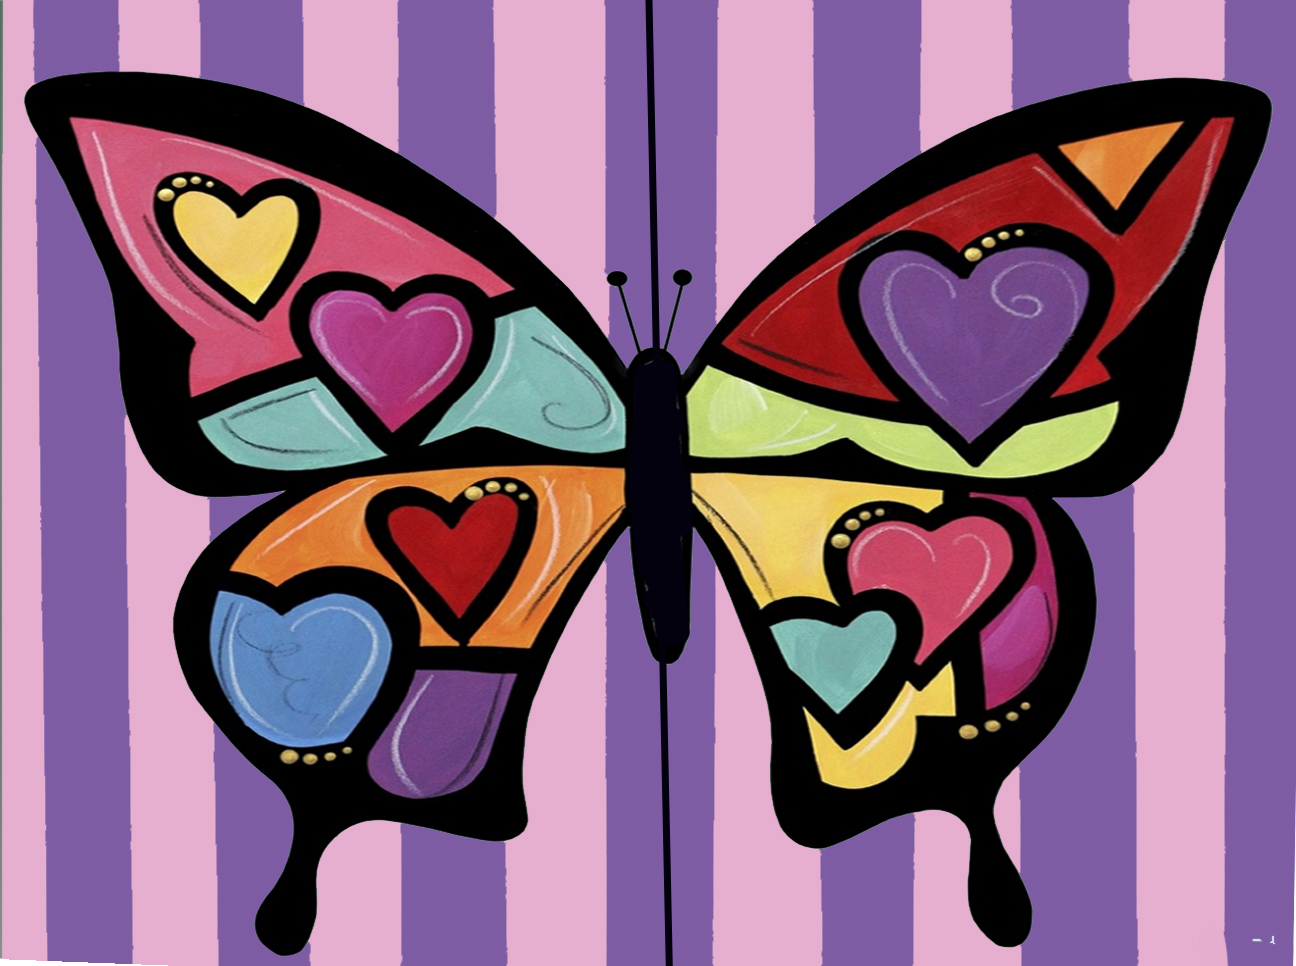 February 12th - Daddy/Daughter Paint Night! 6:30-8:30 pm